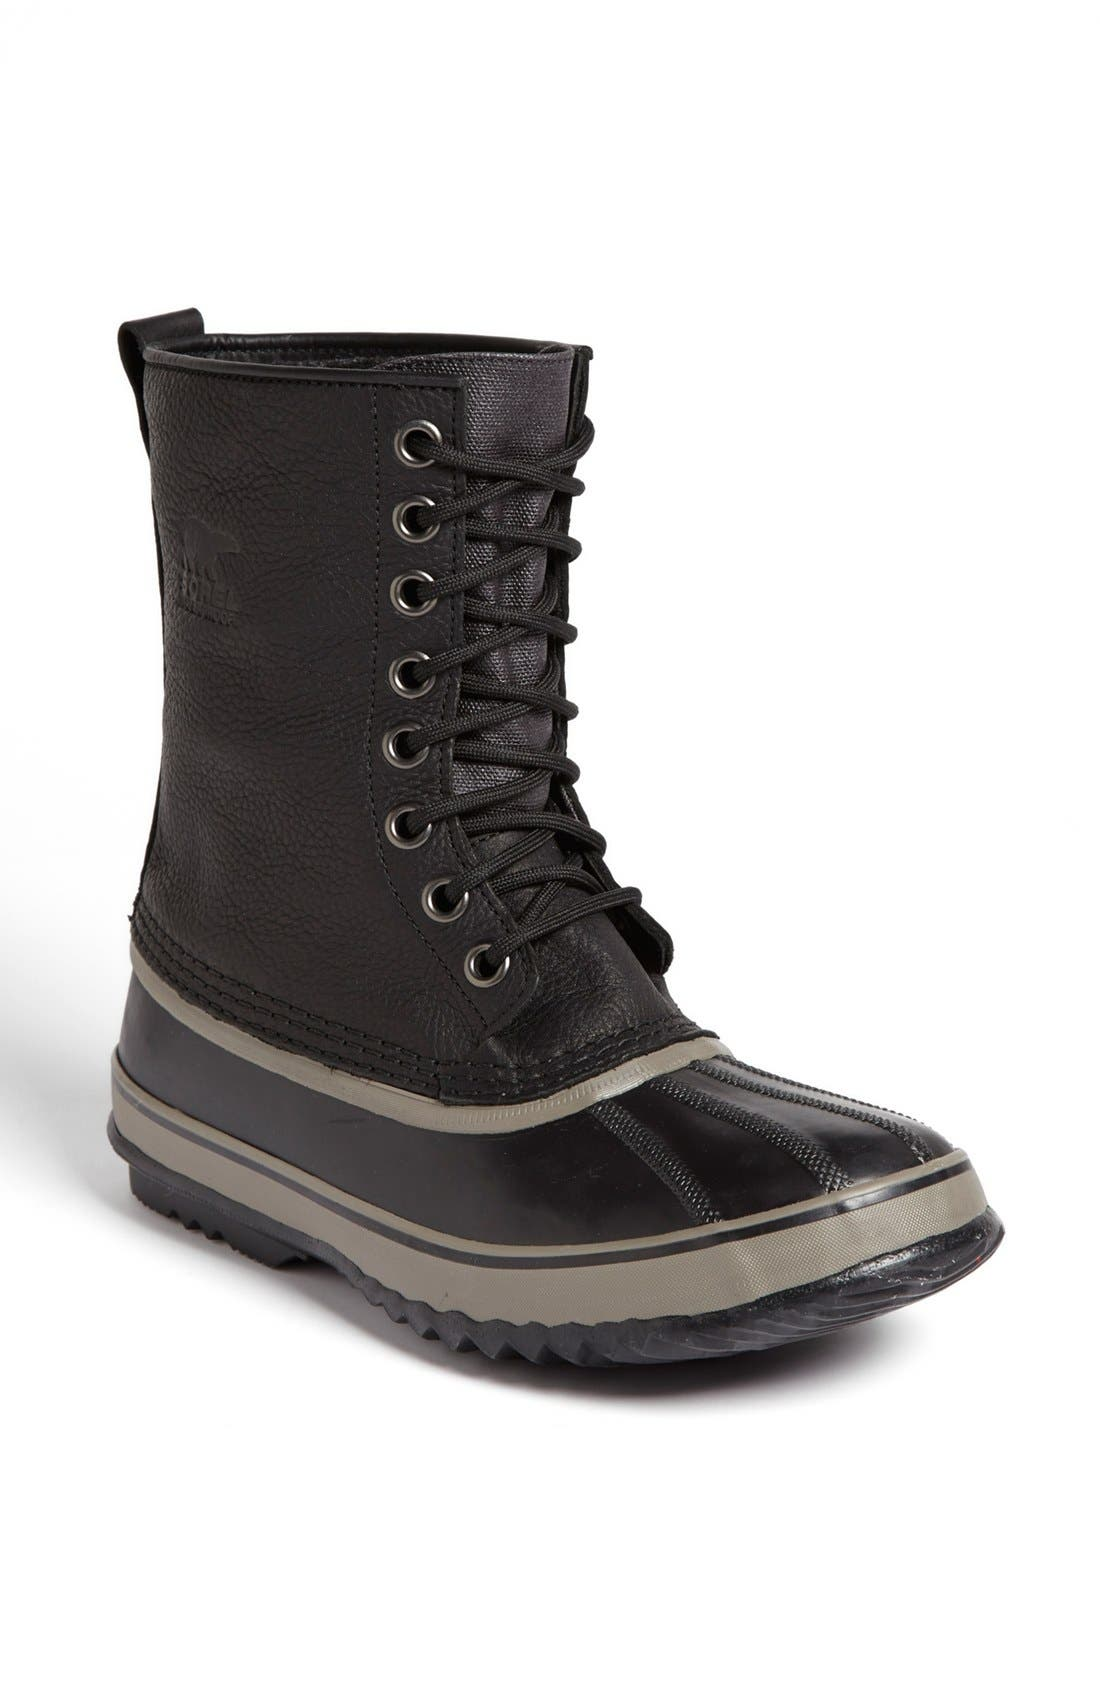 SOREL '1964 Premium T' Snow Boot